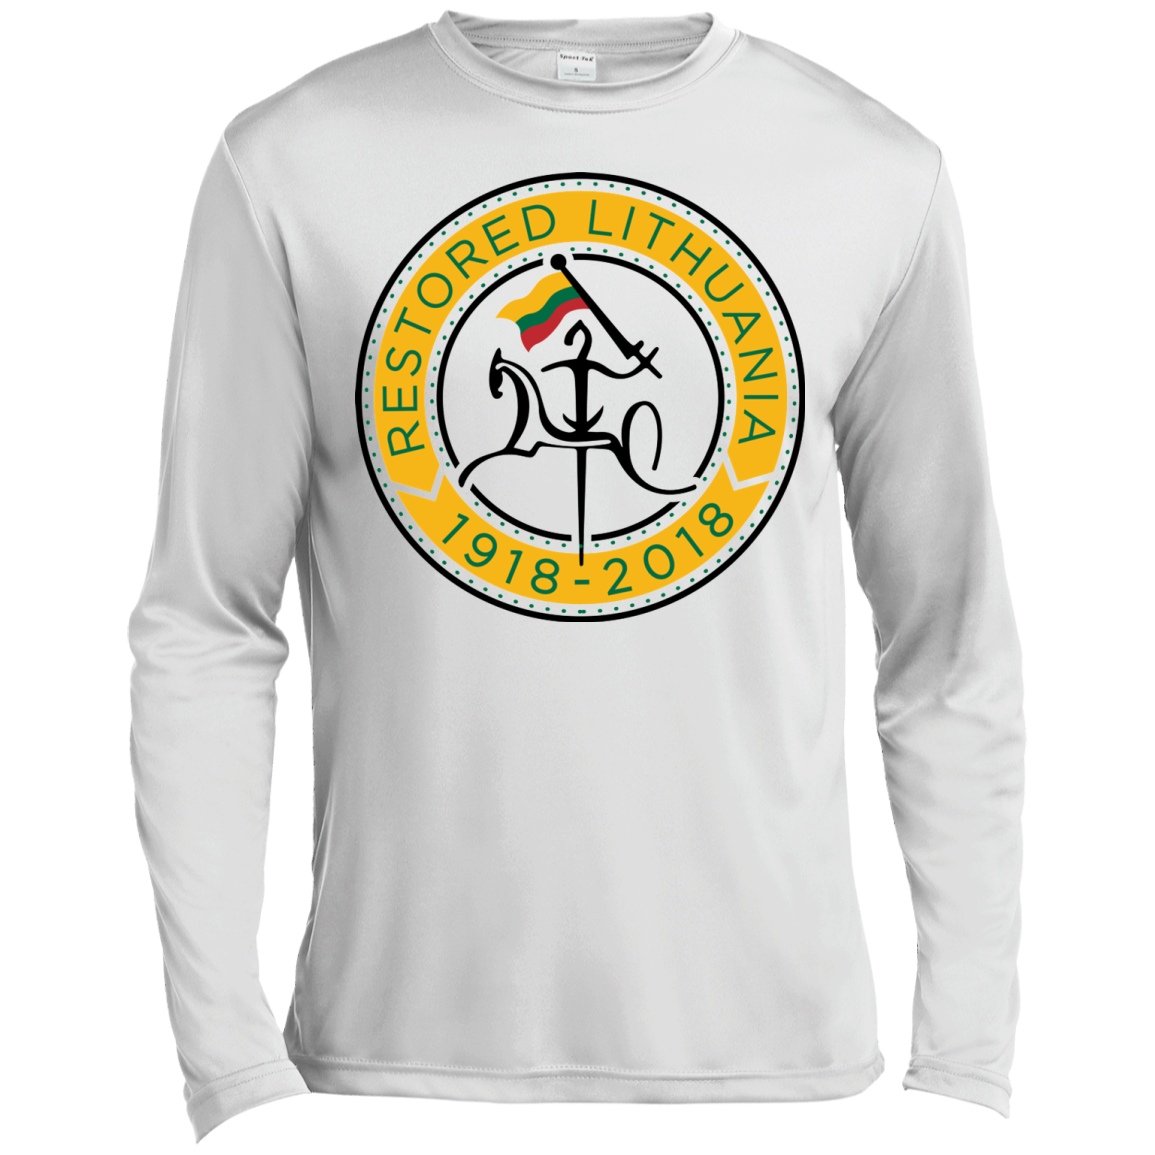 Restored 100 (Vytis Yellow Circle) -- Vyrams Moisture Absorbing Long Sleeve